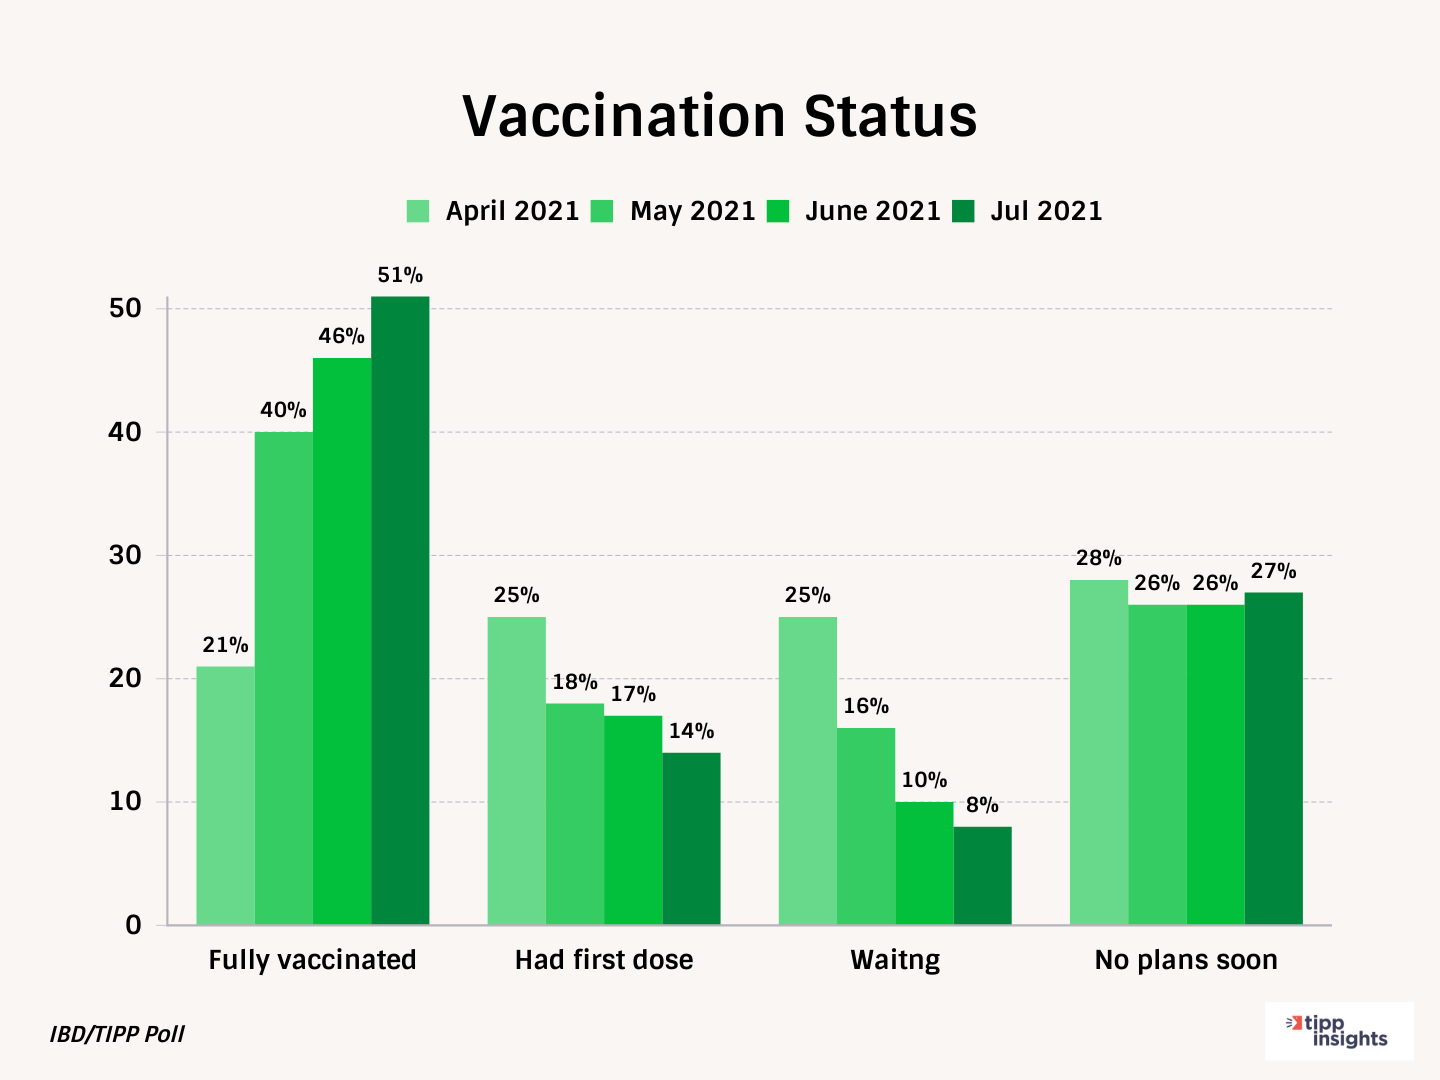 TIPP Poll Results: Americans Vaccination status by month break down (Fully vaccinate, had first dose, waiting, no plans soon)